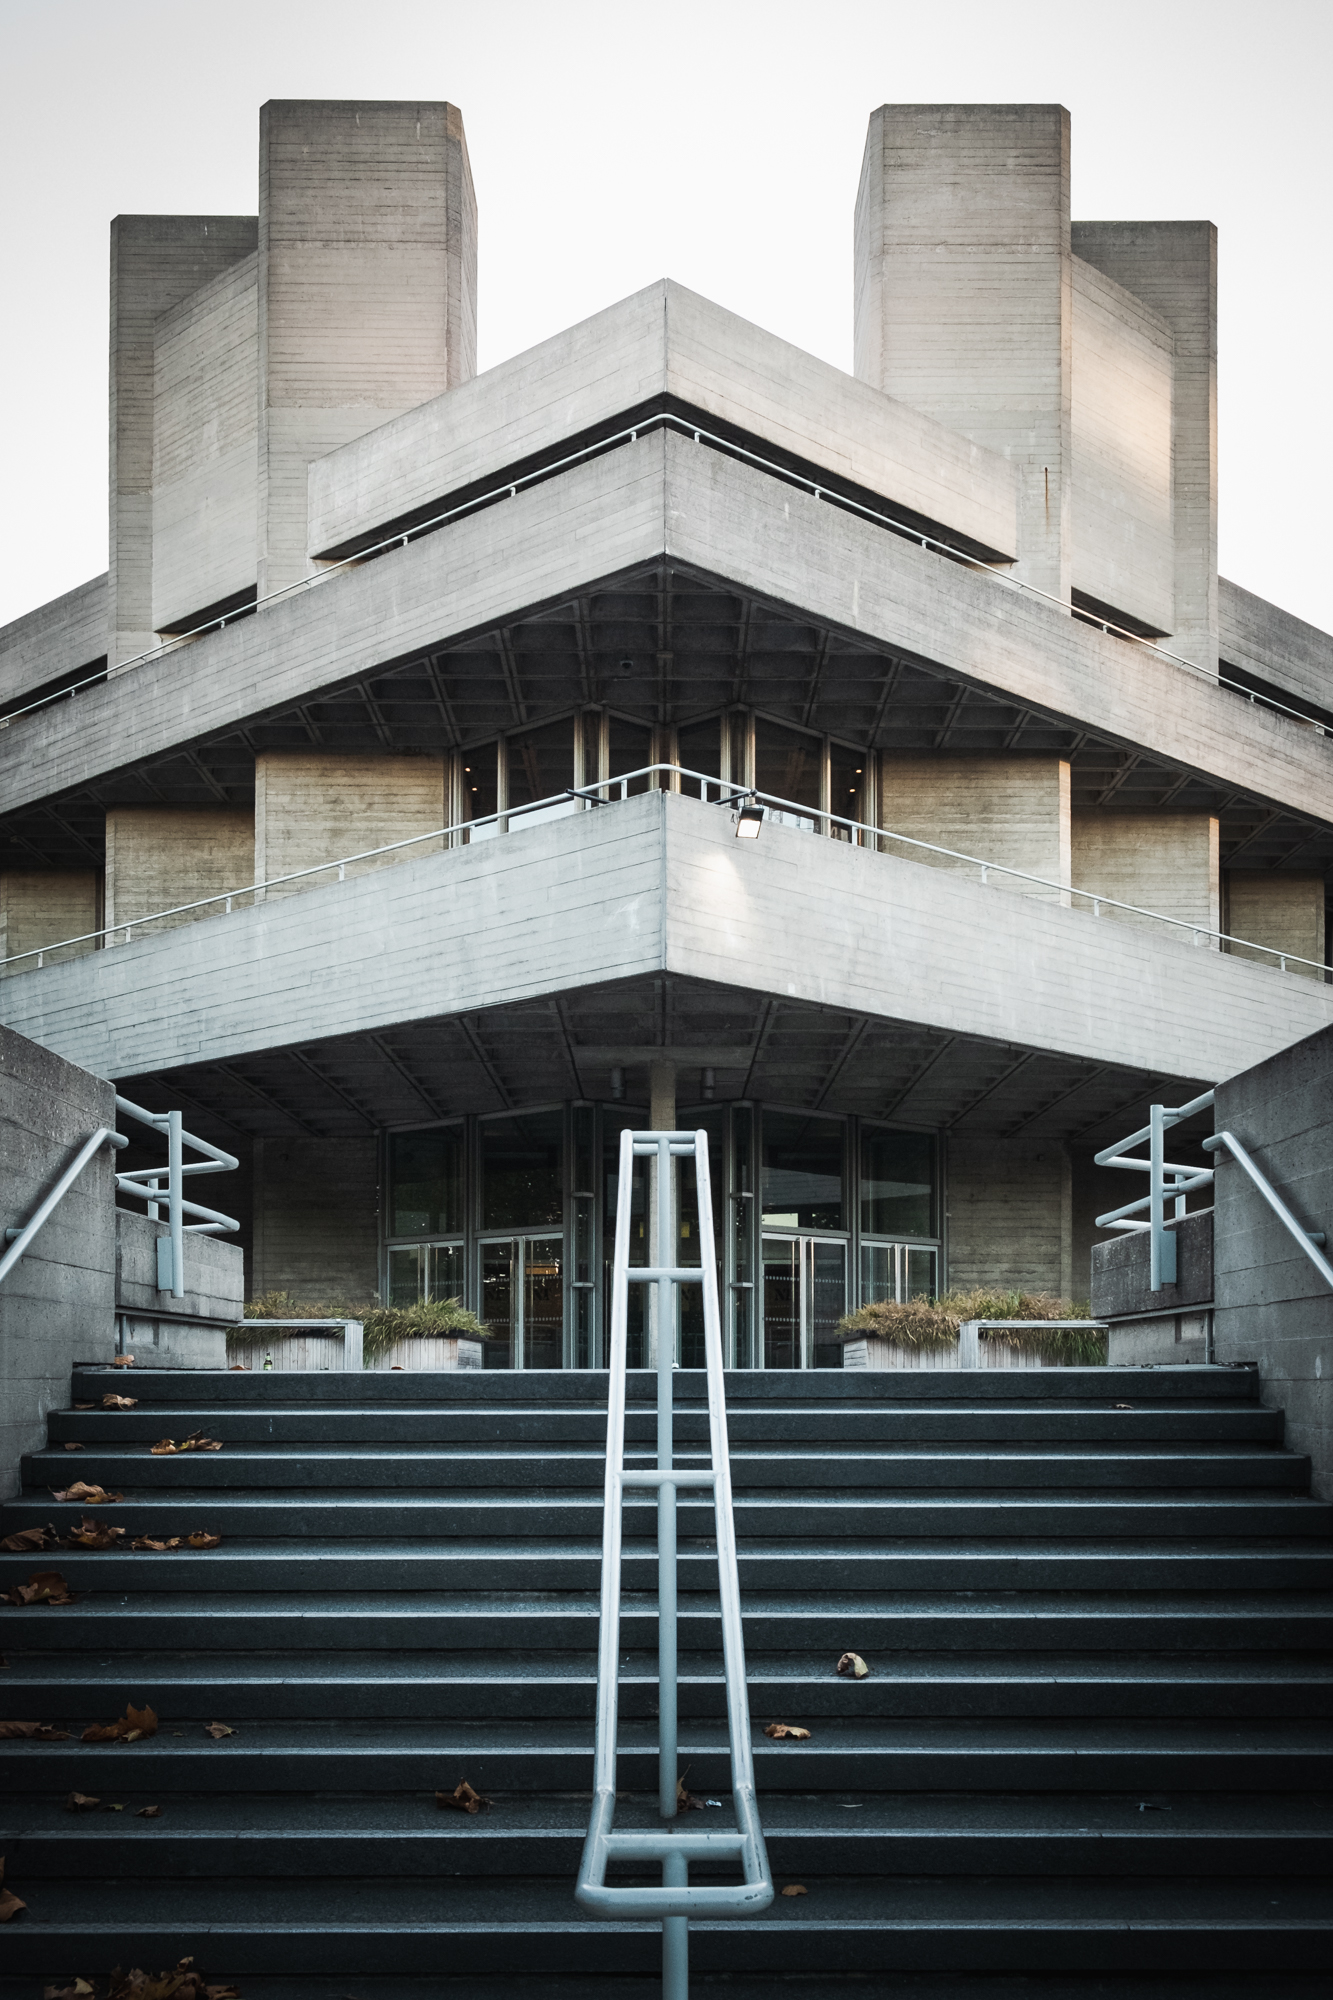 Architecture photo of the National Theatre, London by Trevor Sherwin